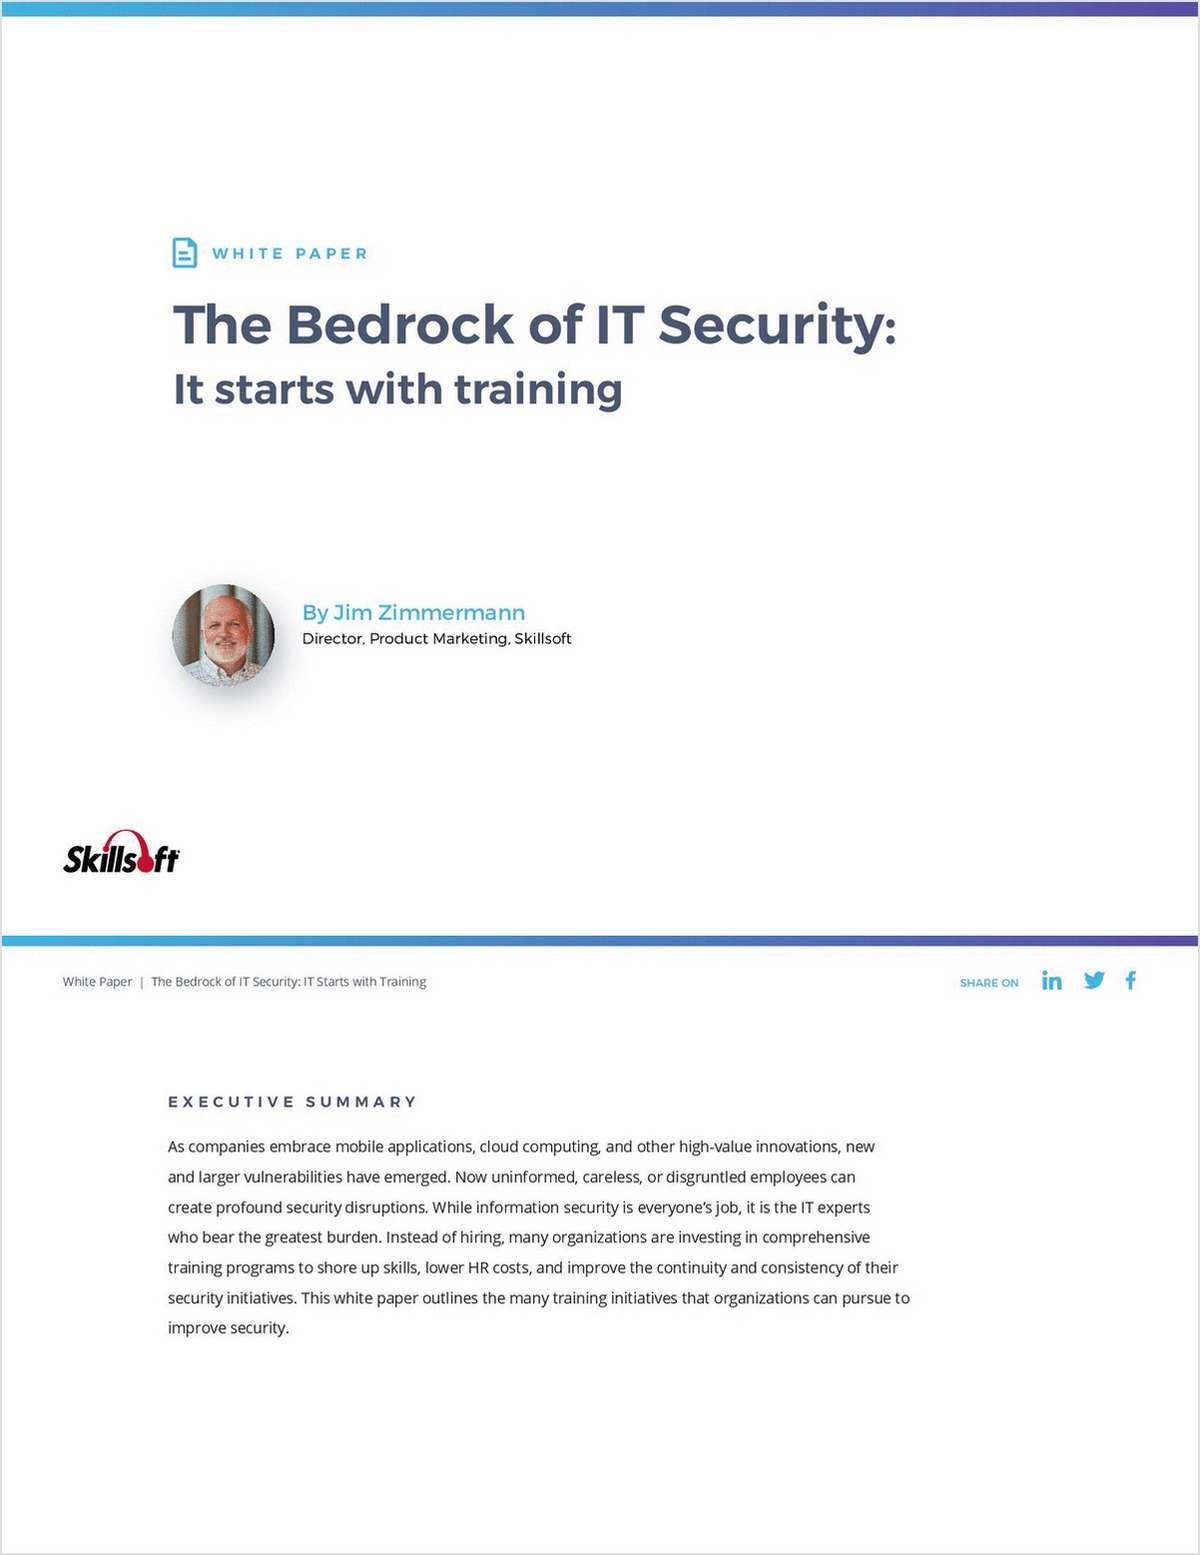 The Bedrock of IT Security: It Starts With Training